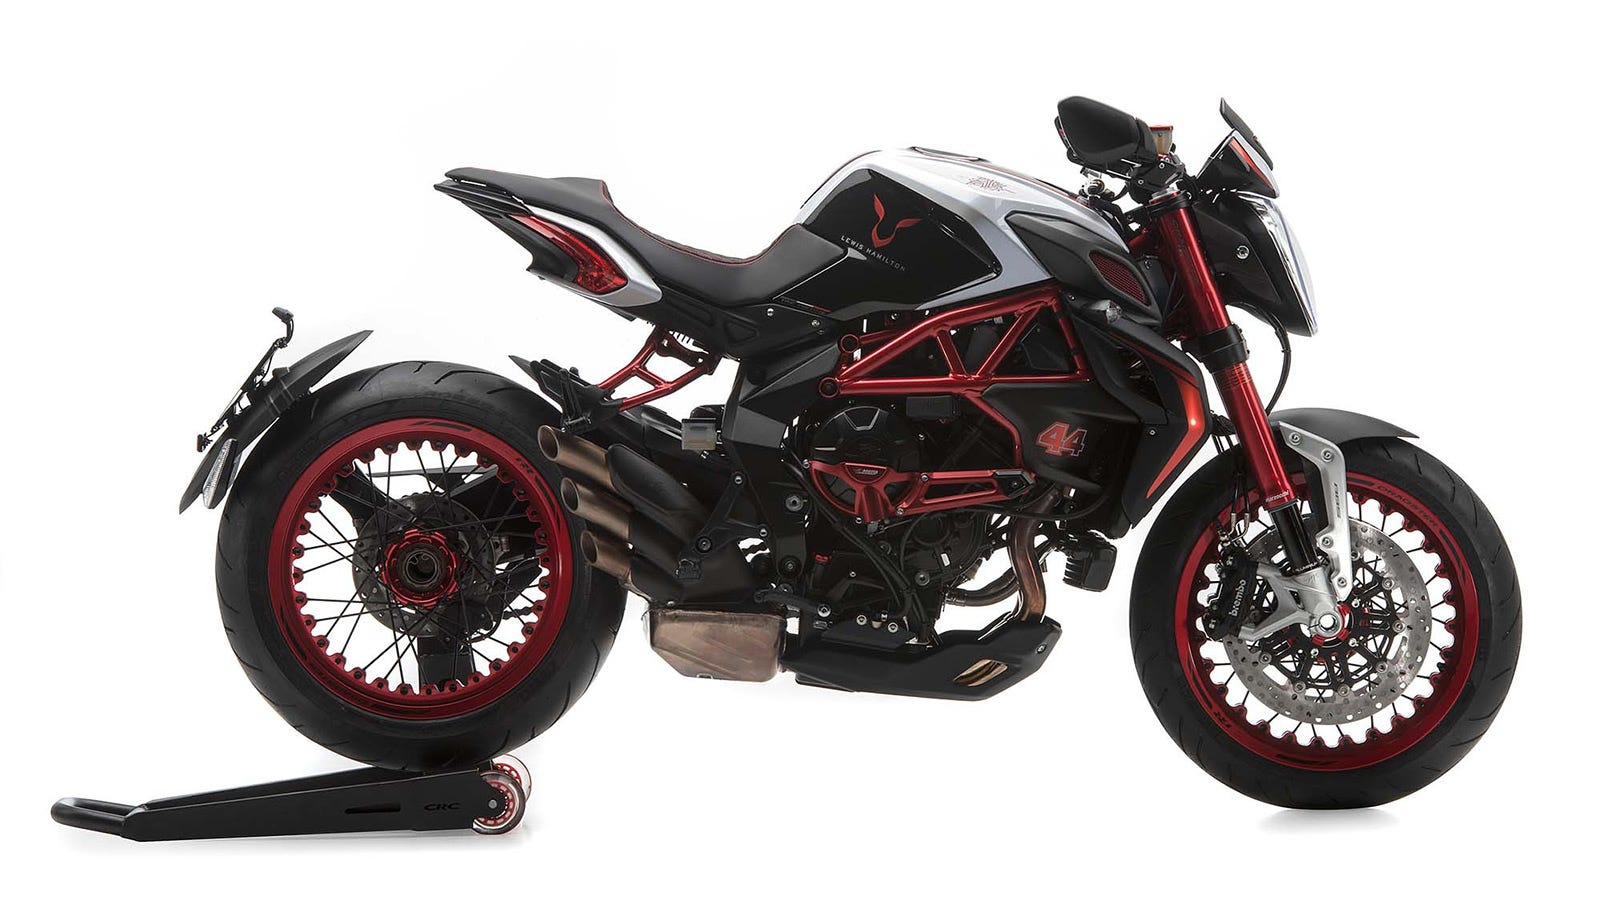 2016 mv agusta brutale 800 and lewis hamilton dragster rr: small